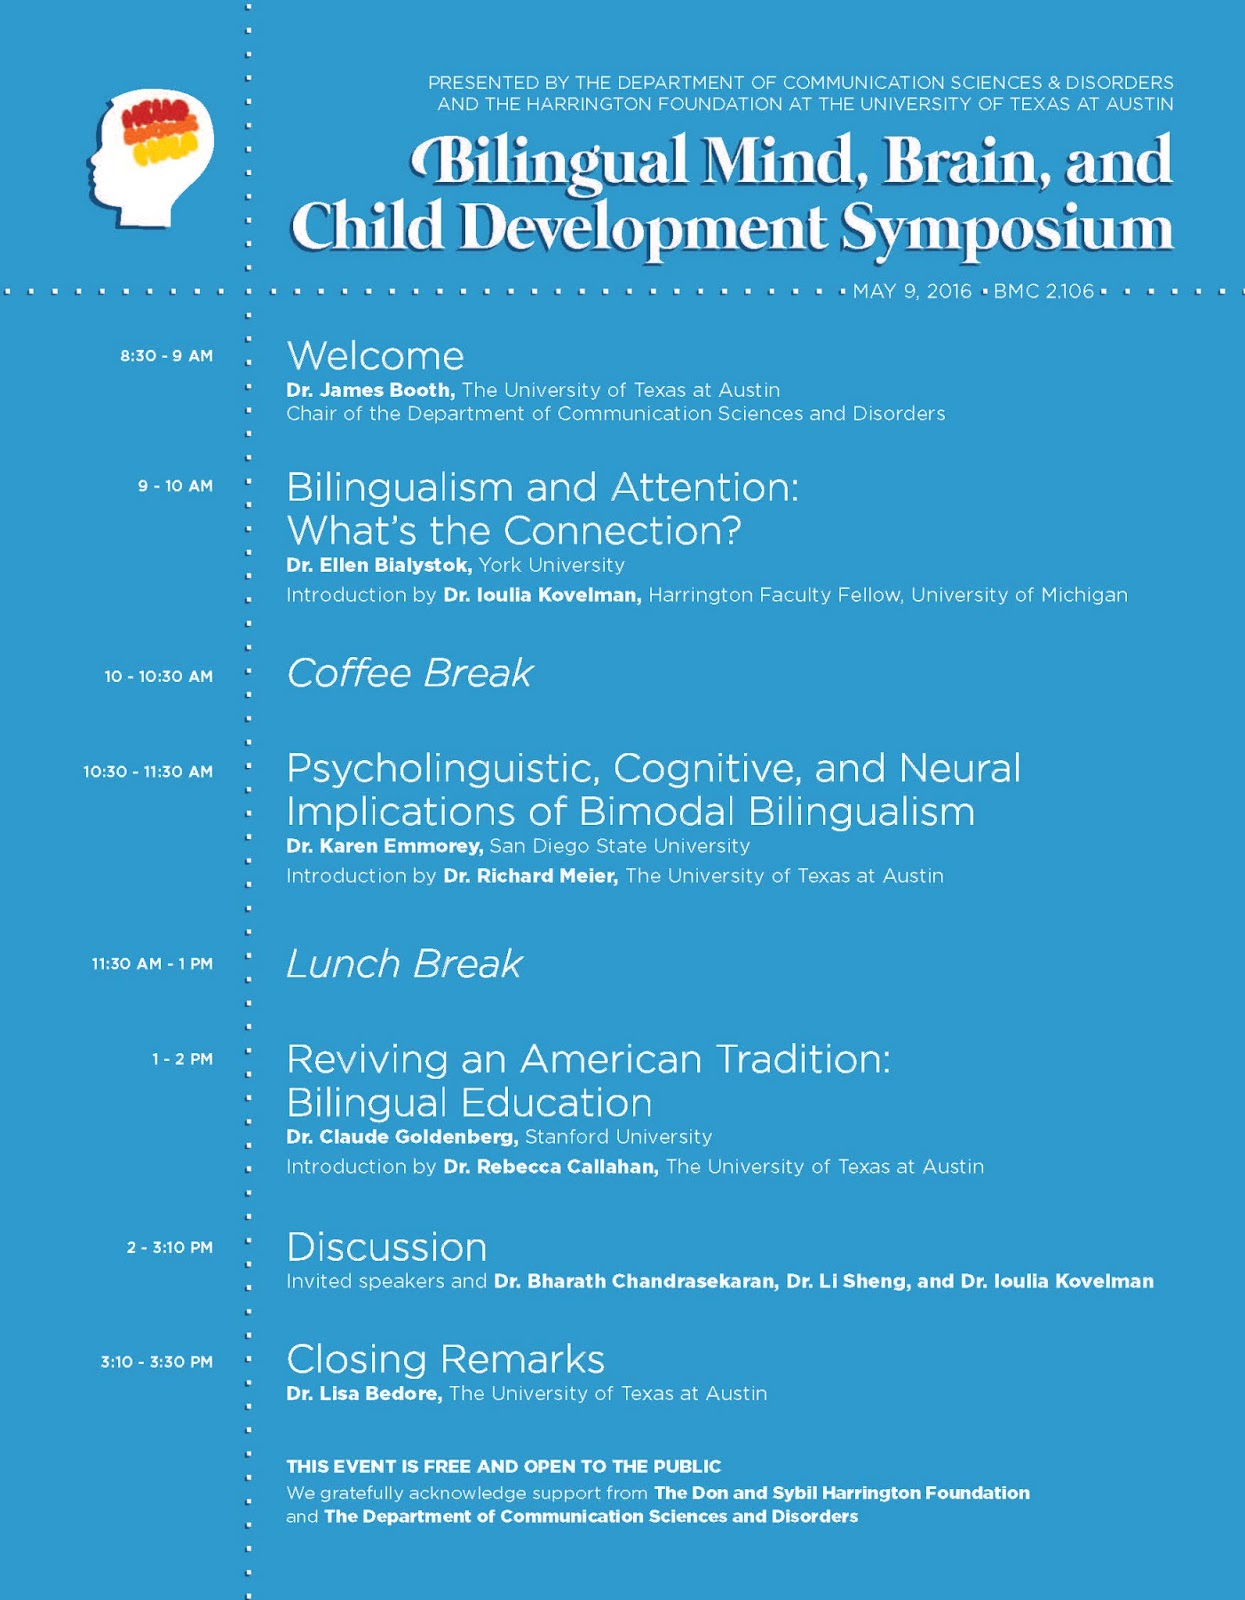 bilingual mind brain child development symposium at ut bmc 2106 auditorium free and open to the public